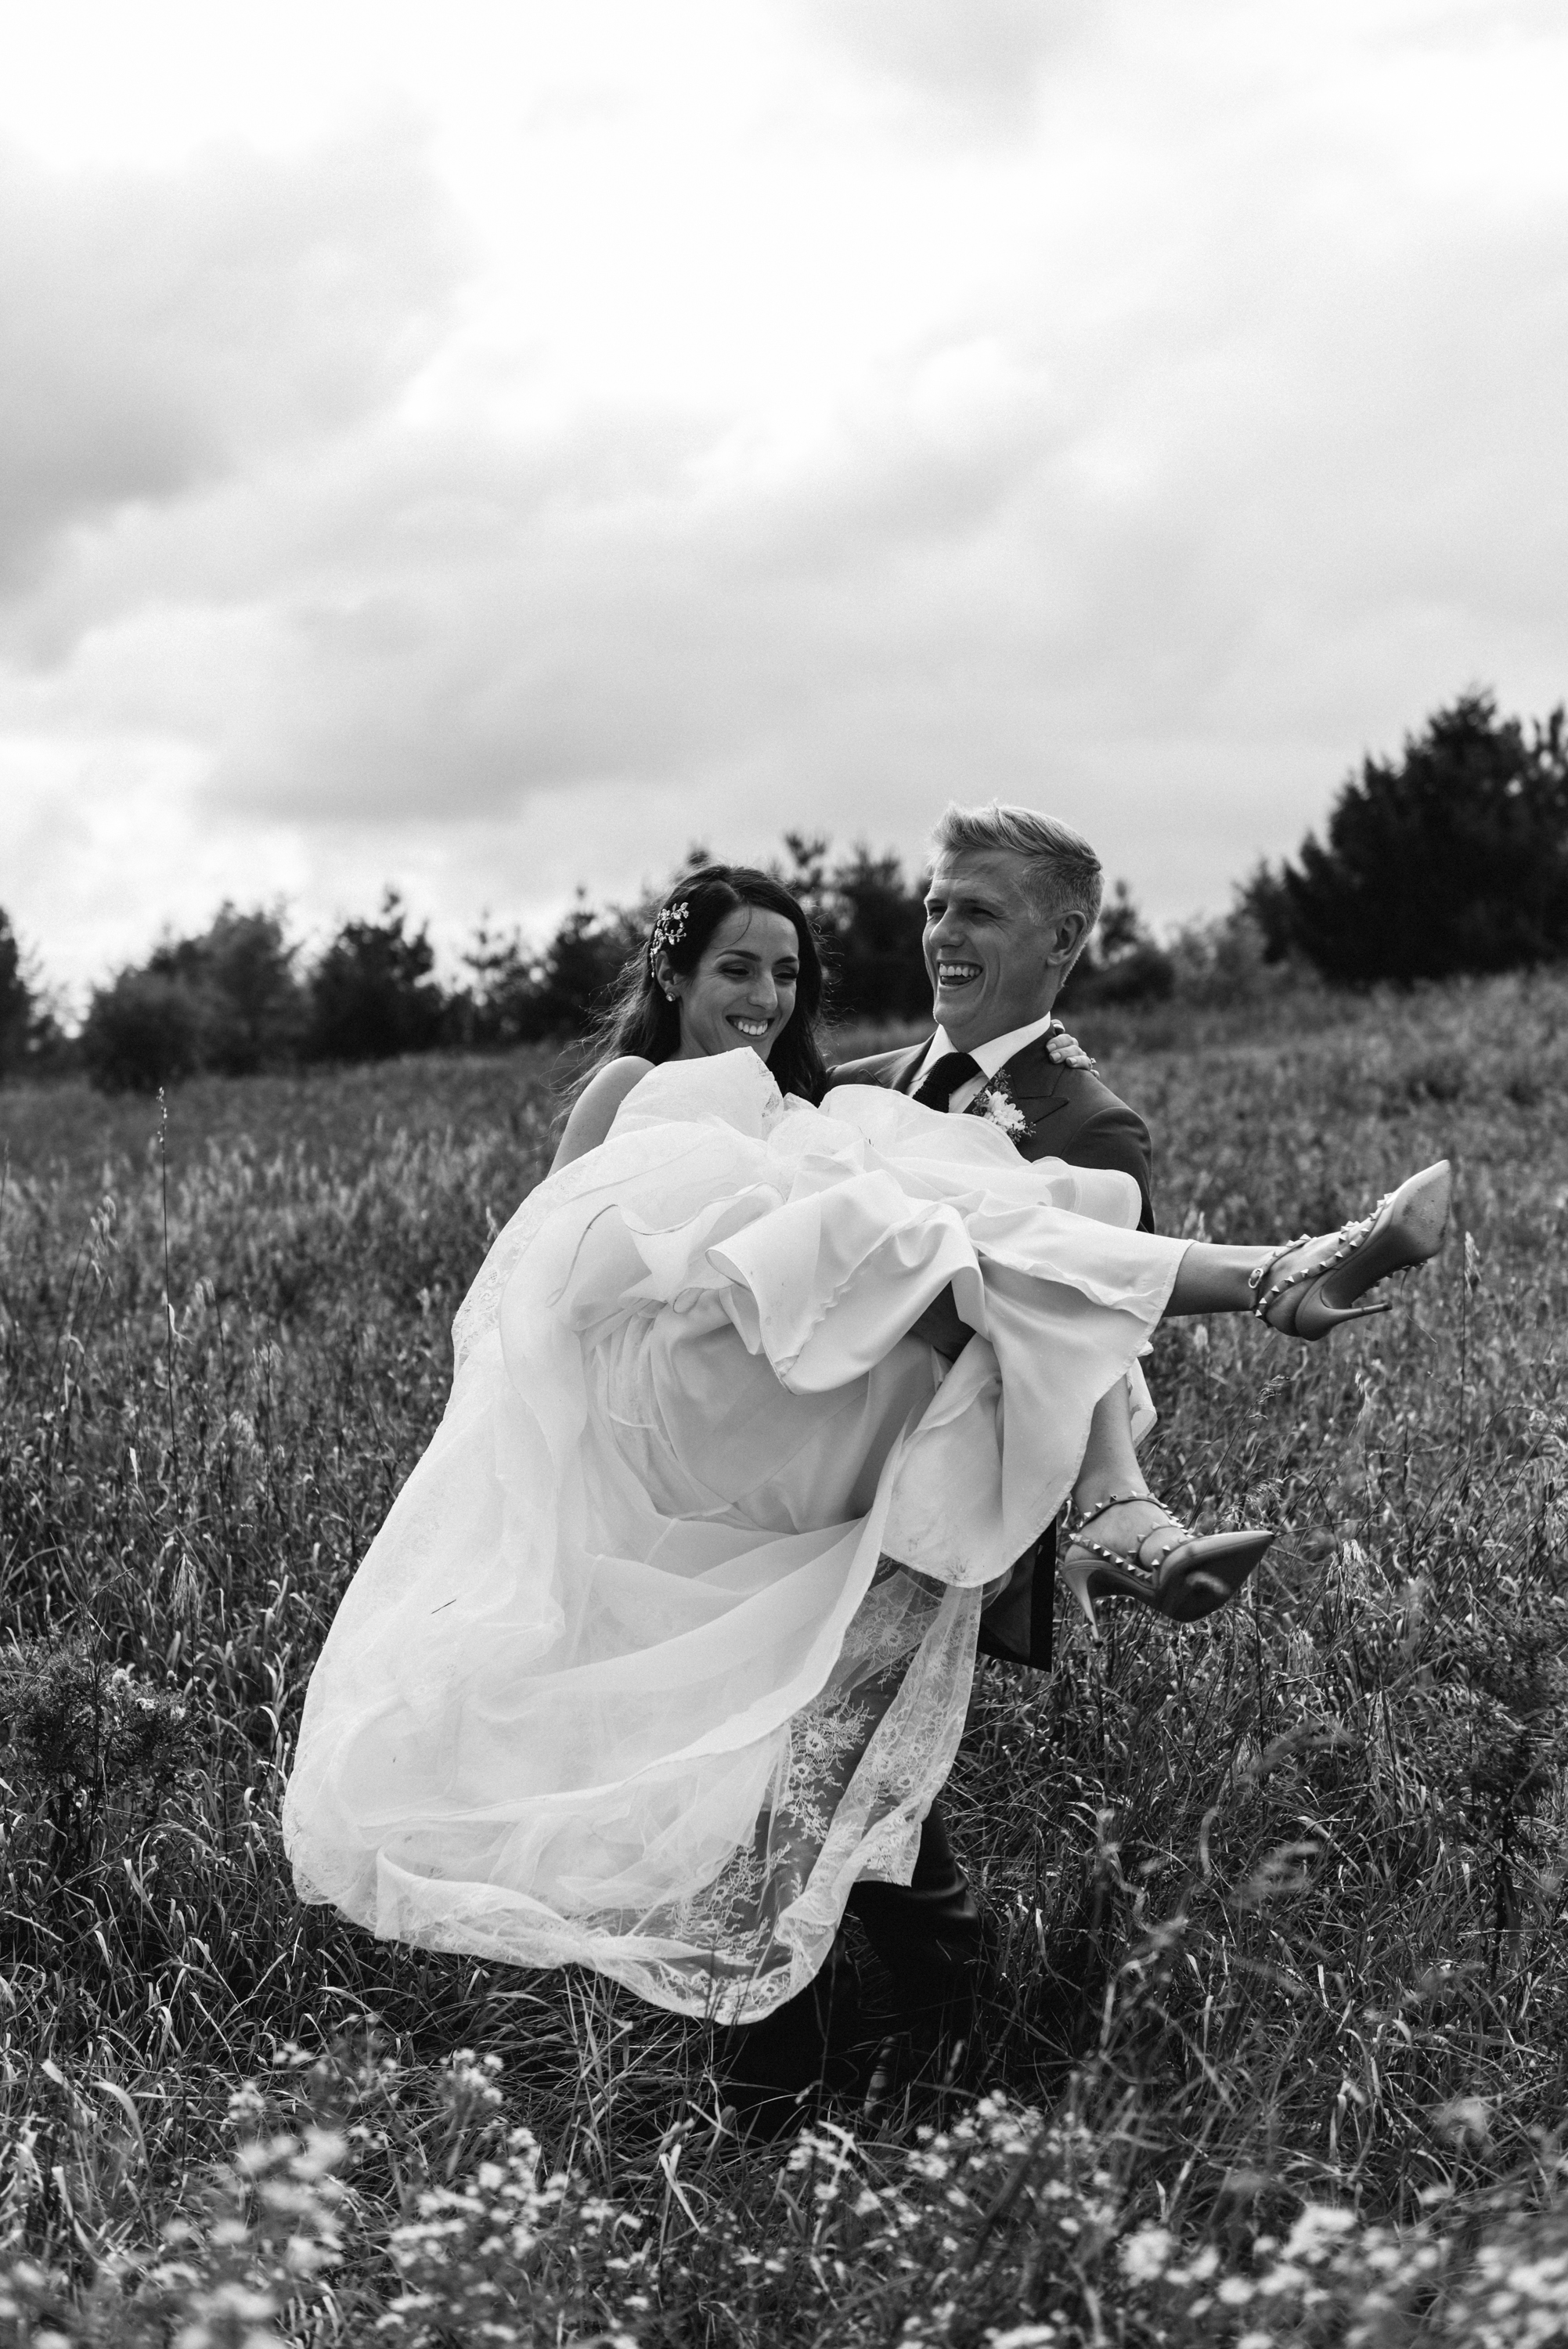 bride-groom-candid-black-white-photography